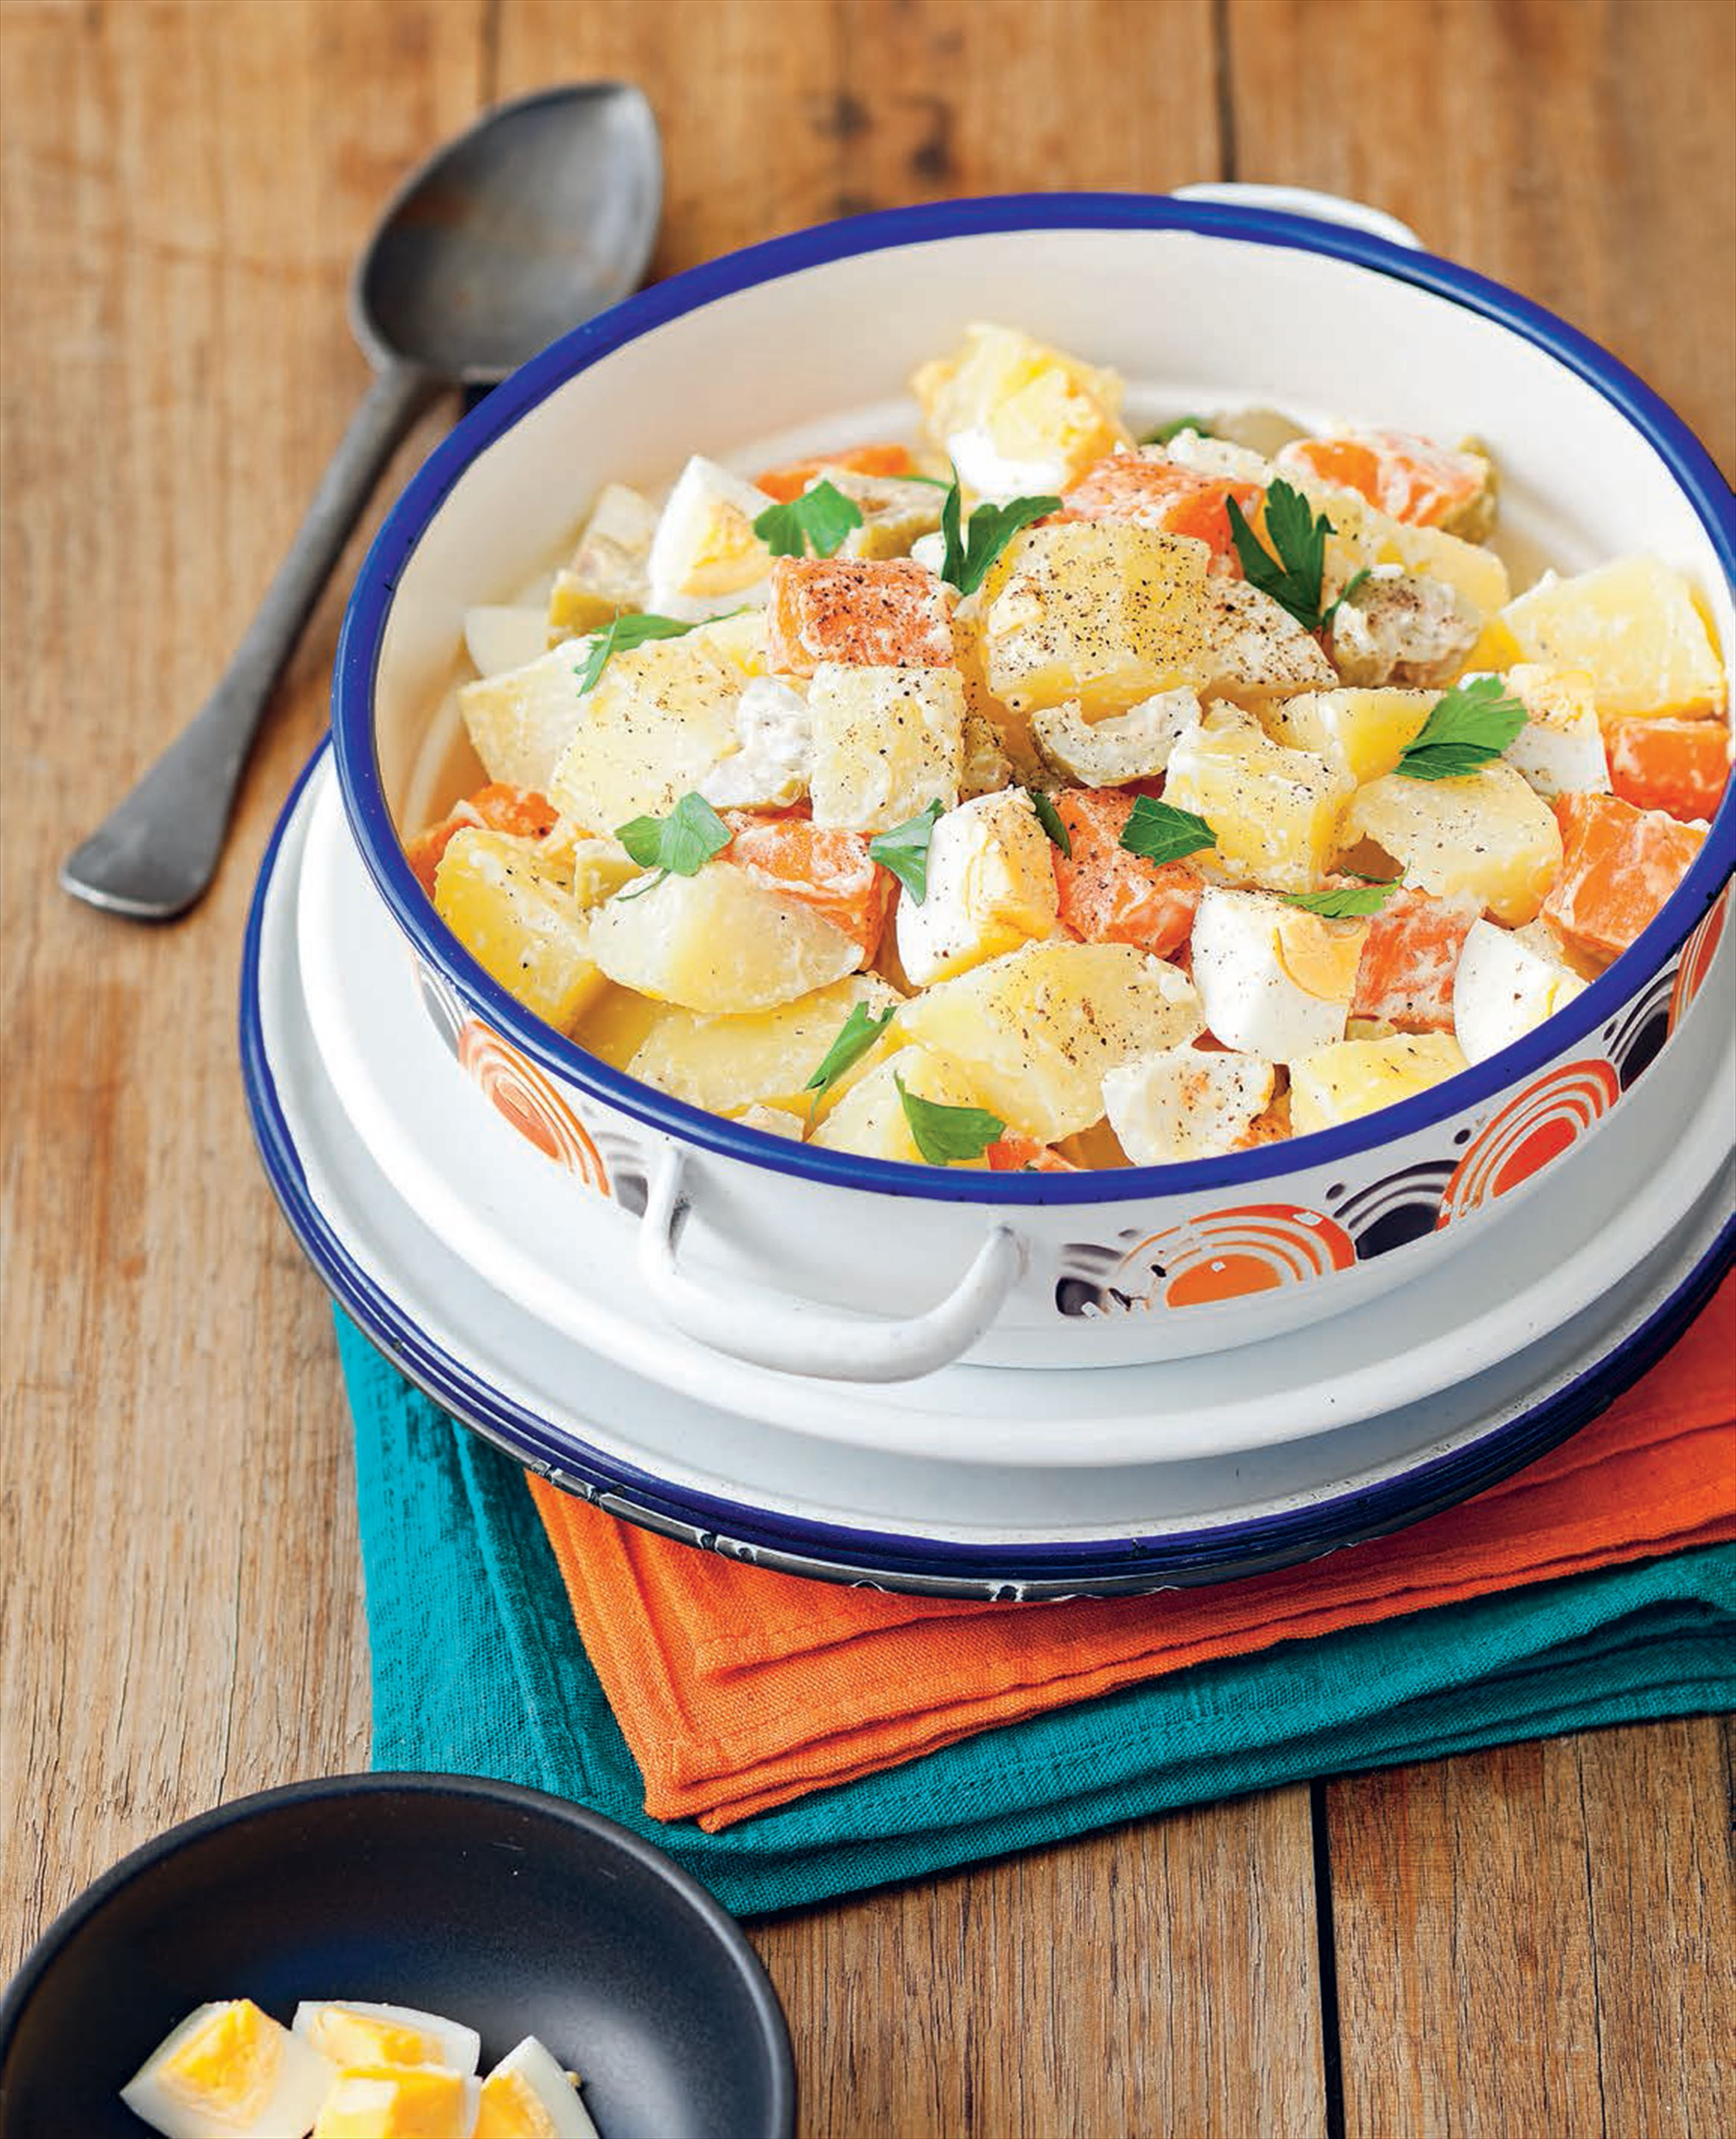 Brazilian potato salad